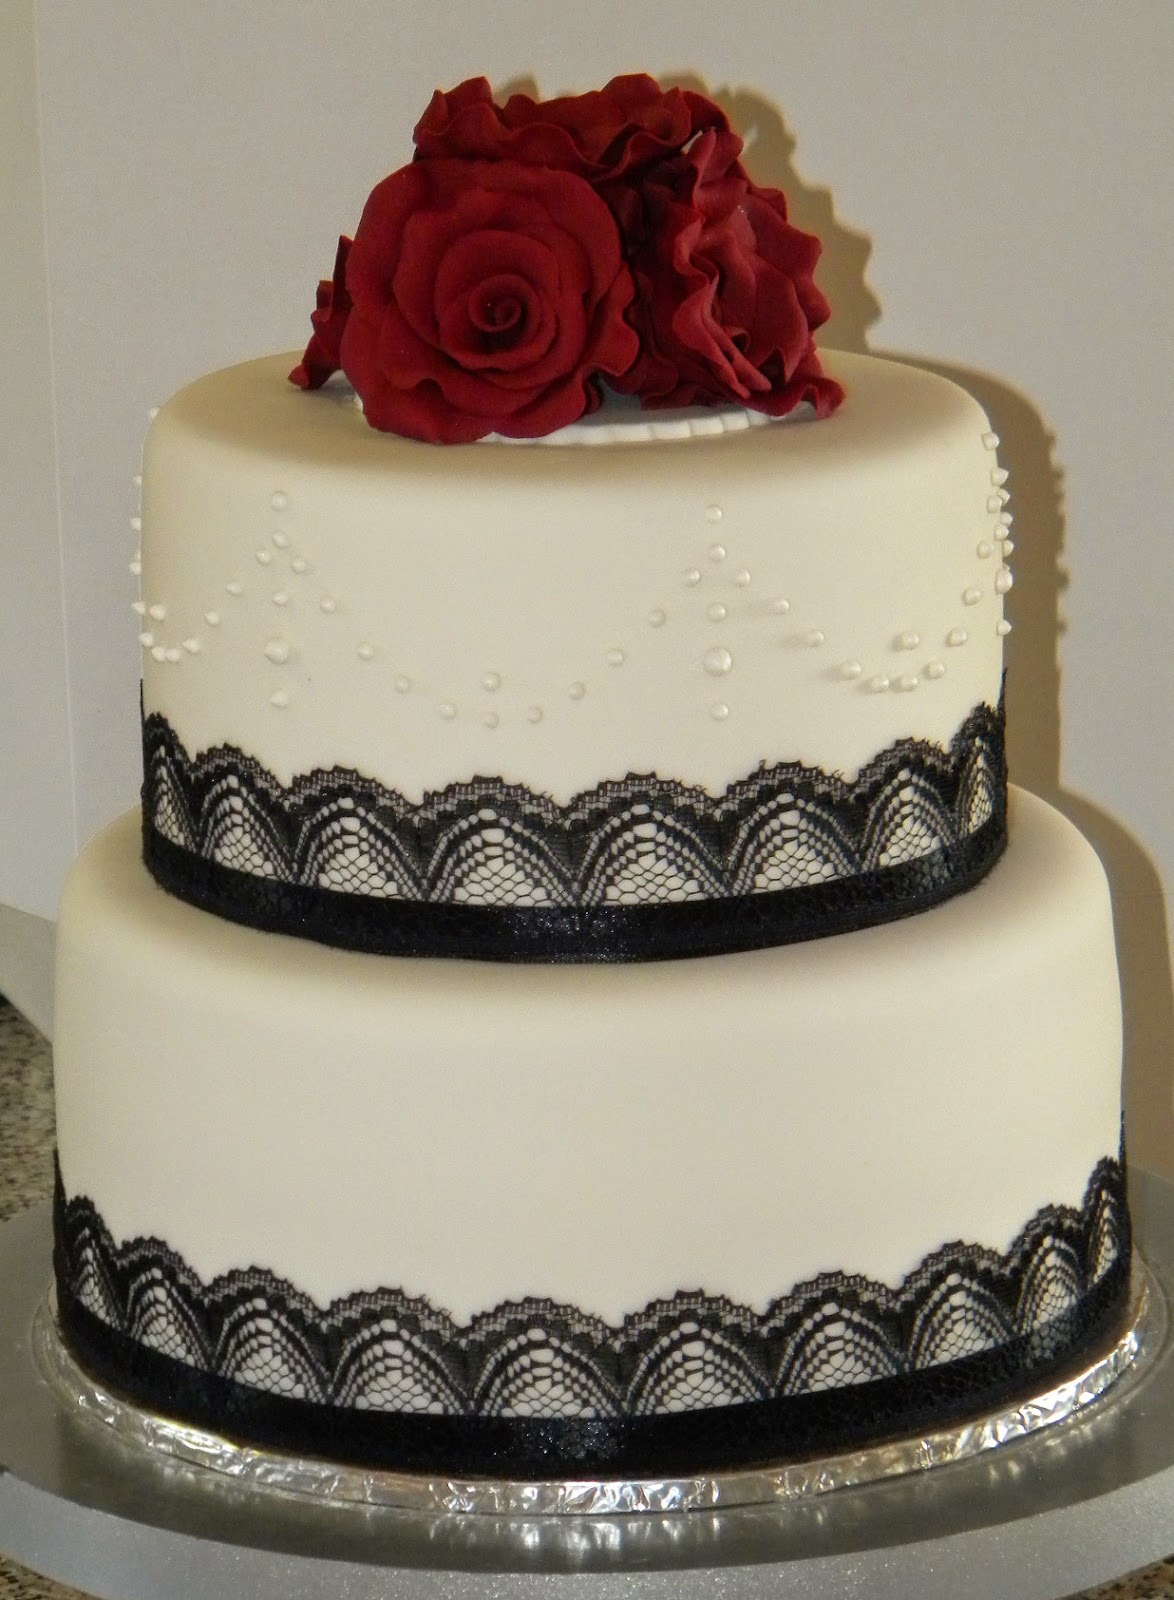 Bite Me Cupcakes And Wrappers Deep Red Roses Black Lace Wedding Cake